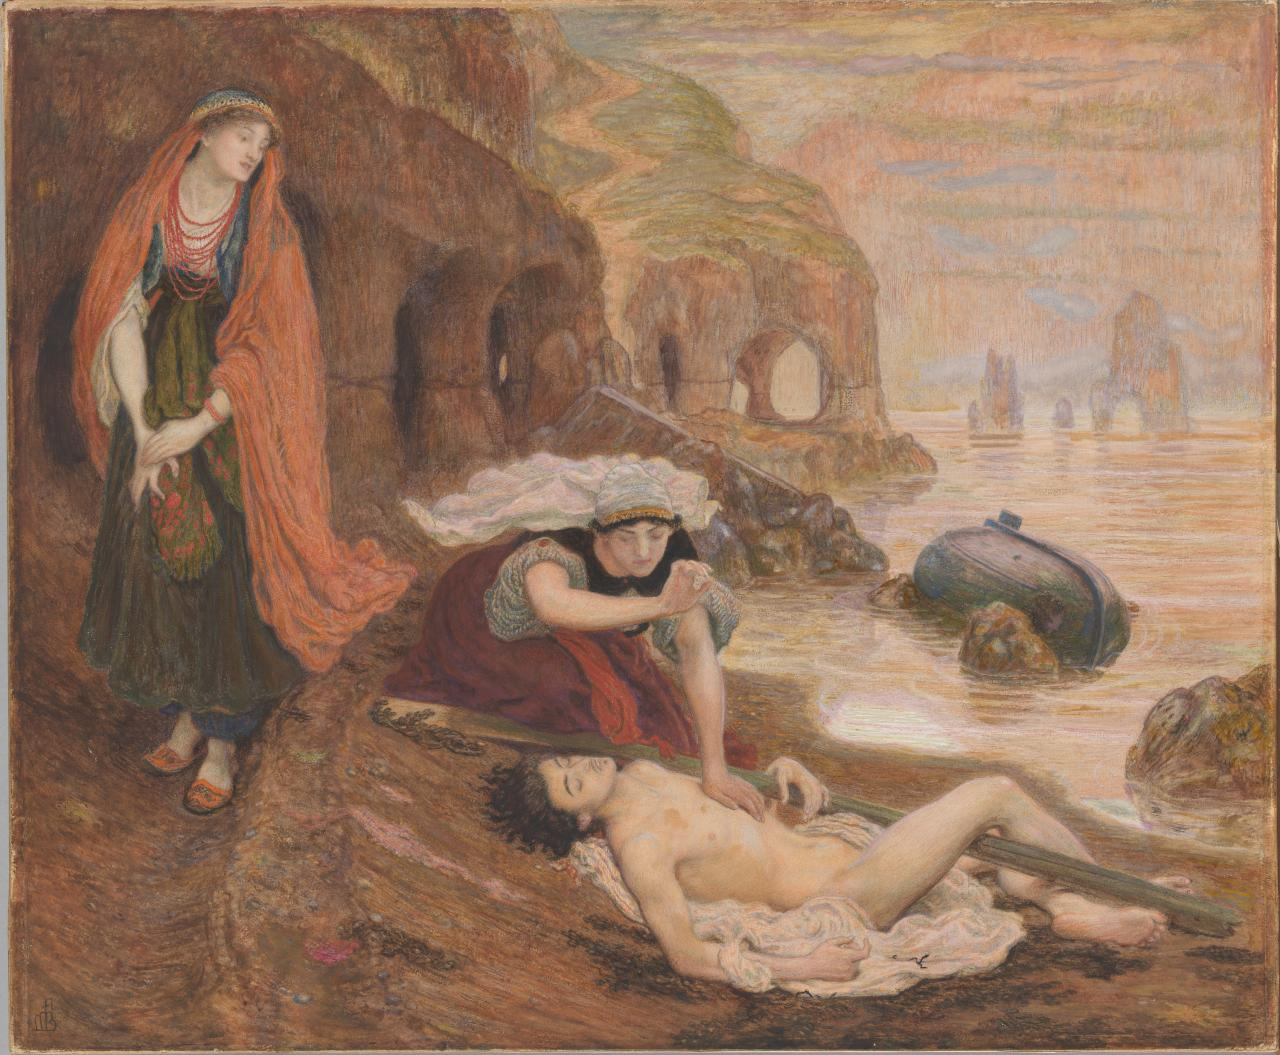 The finding of Don Juan by Haidée